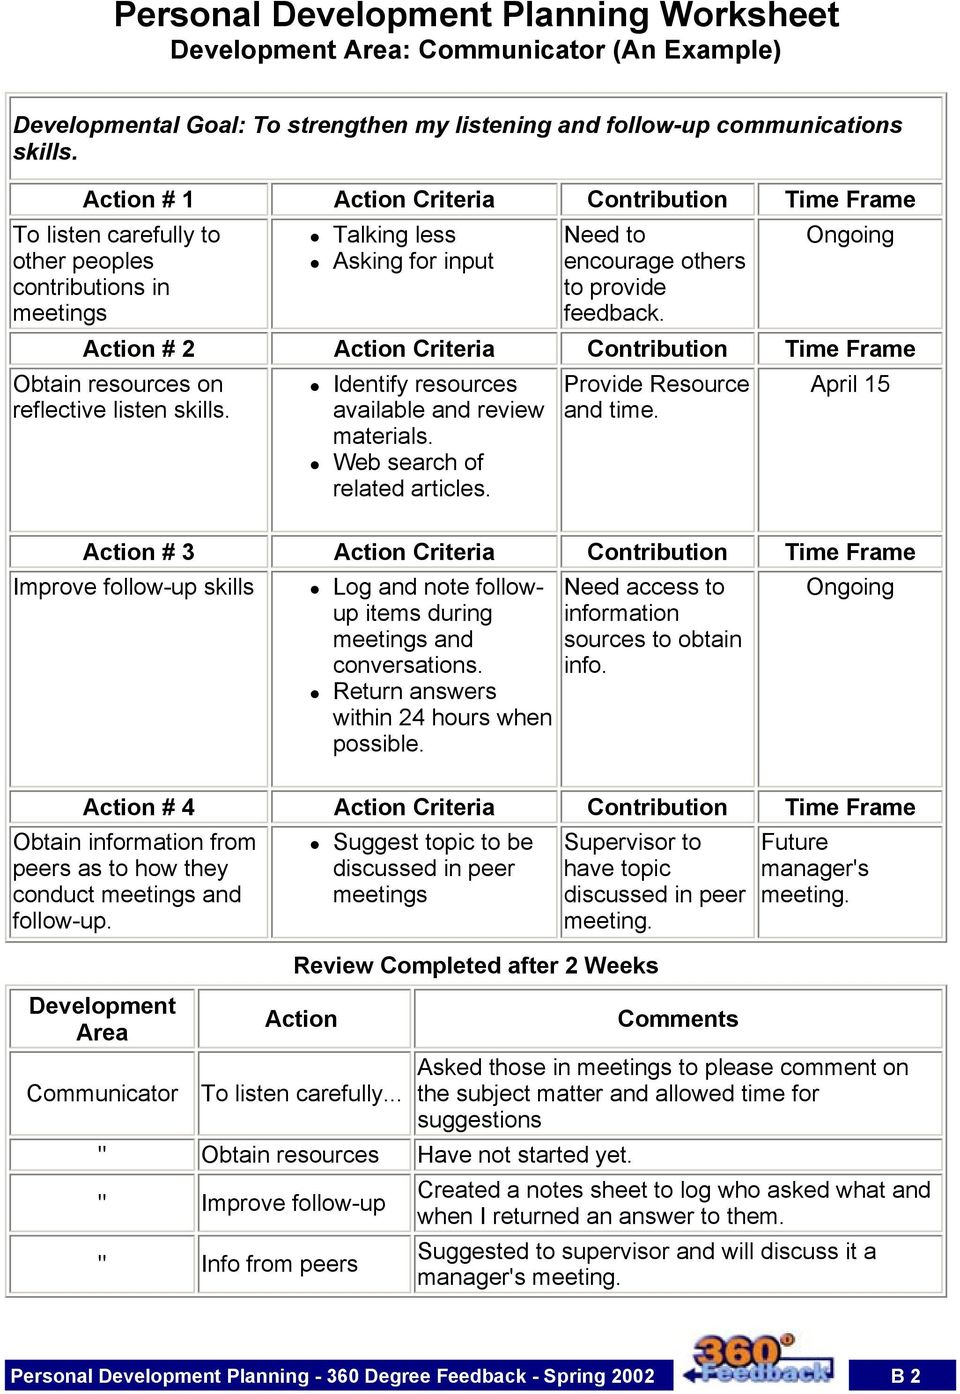 Action # 2 Action Criteria Contribution Time Frame Obtain resources on reflective listen skills. Identify resources available and review materials. Provide Resource and time.